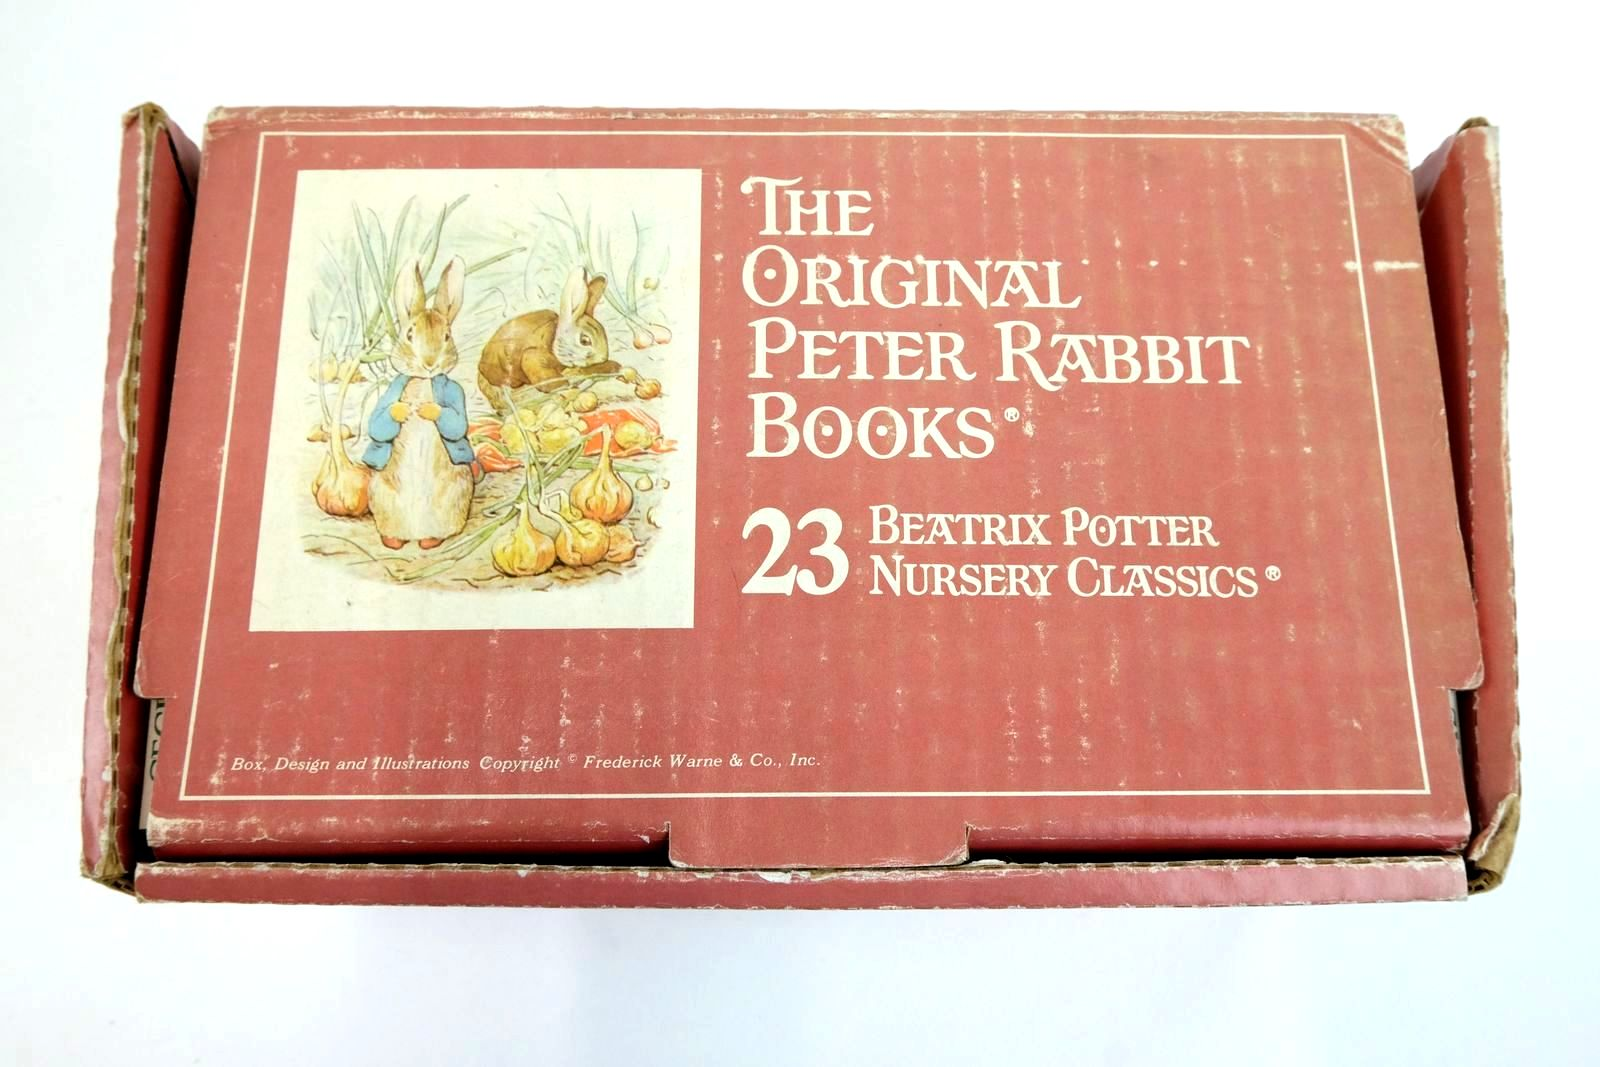 Photo of THE ORIGINAL PETER RABBIT BOOKS 23 BEATRIX POTTER NURSERY CLASSICS written by Potter, Beatrix illustrated by Potter, Beatrix published by Frederick Warne & Co. Inc. (STOCK CODE: 1321795)  for sale by Stella & Rose's Books